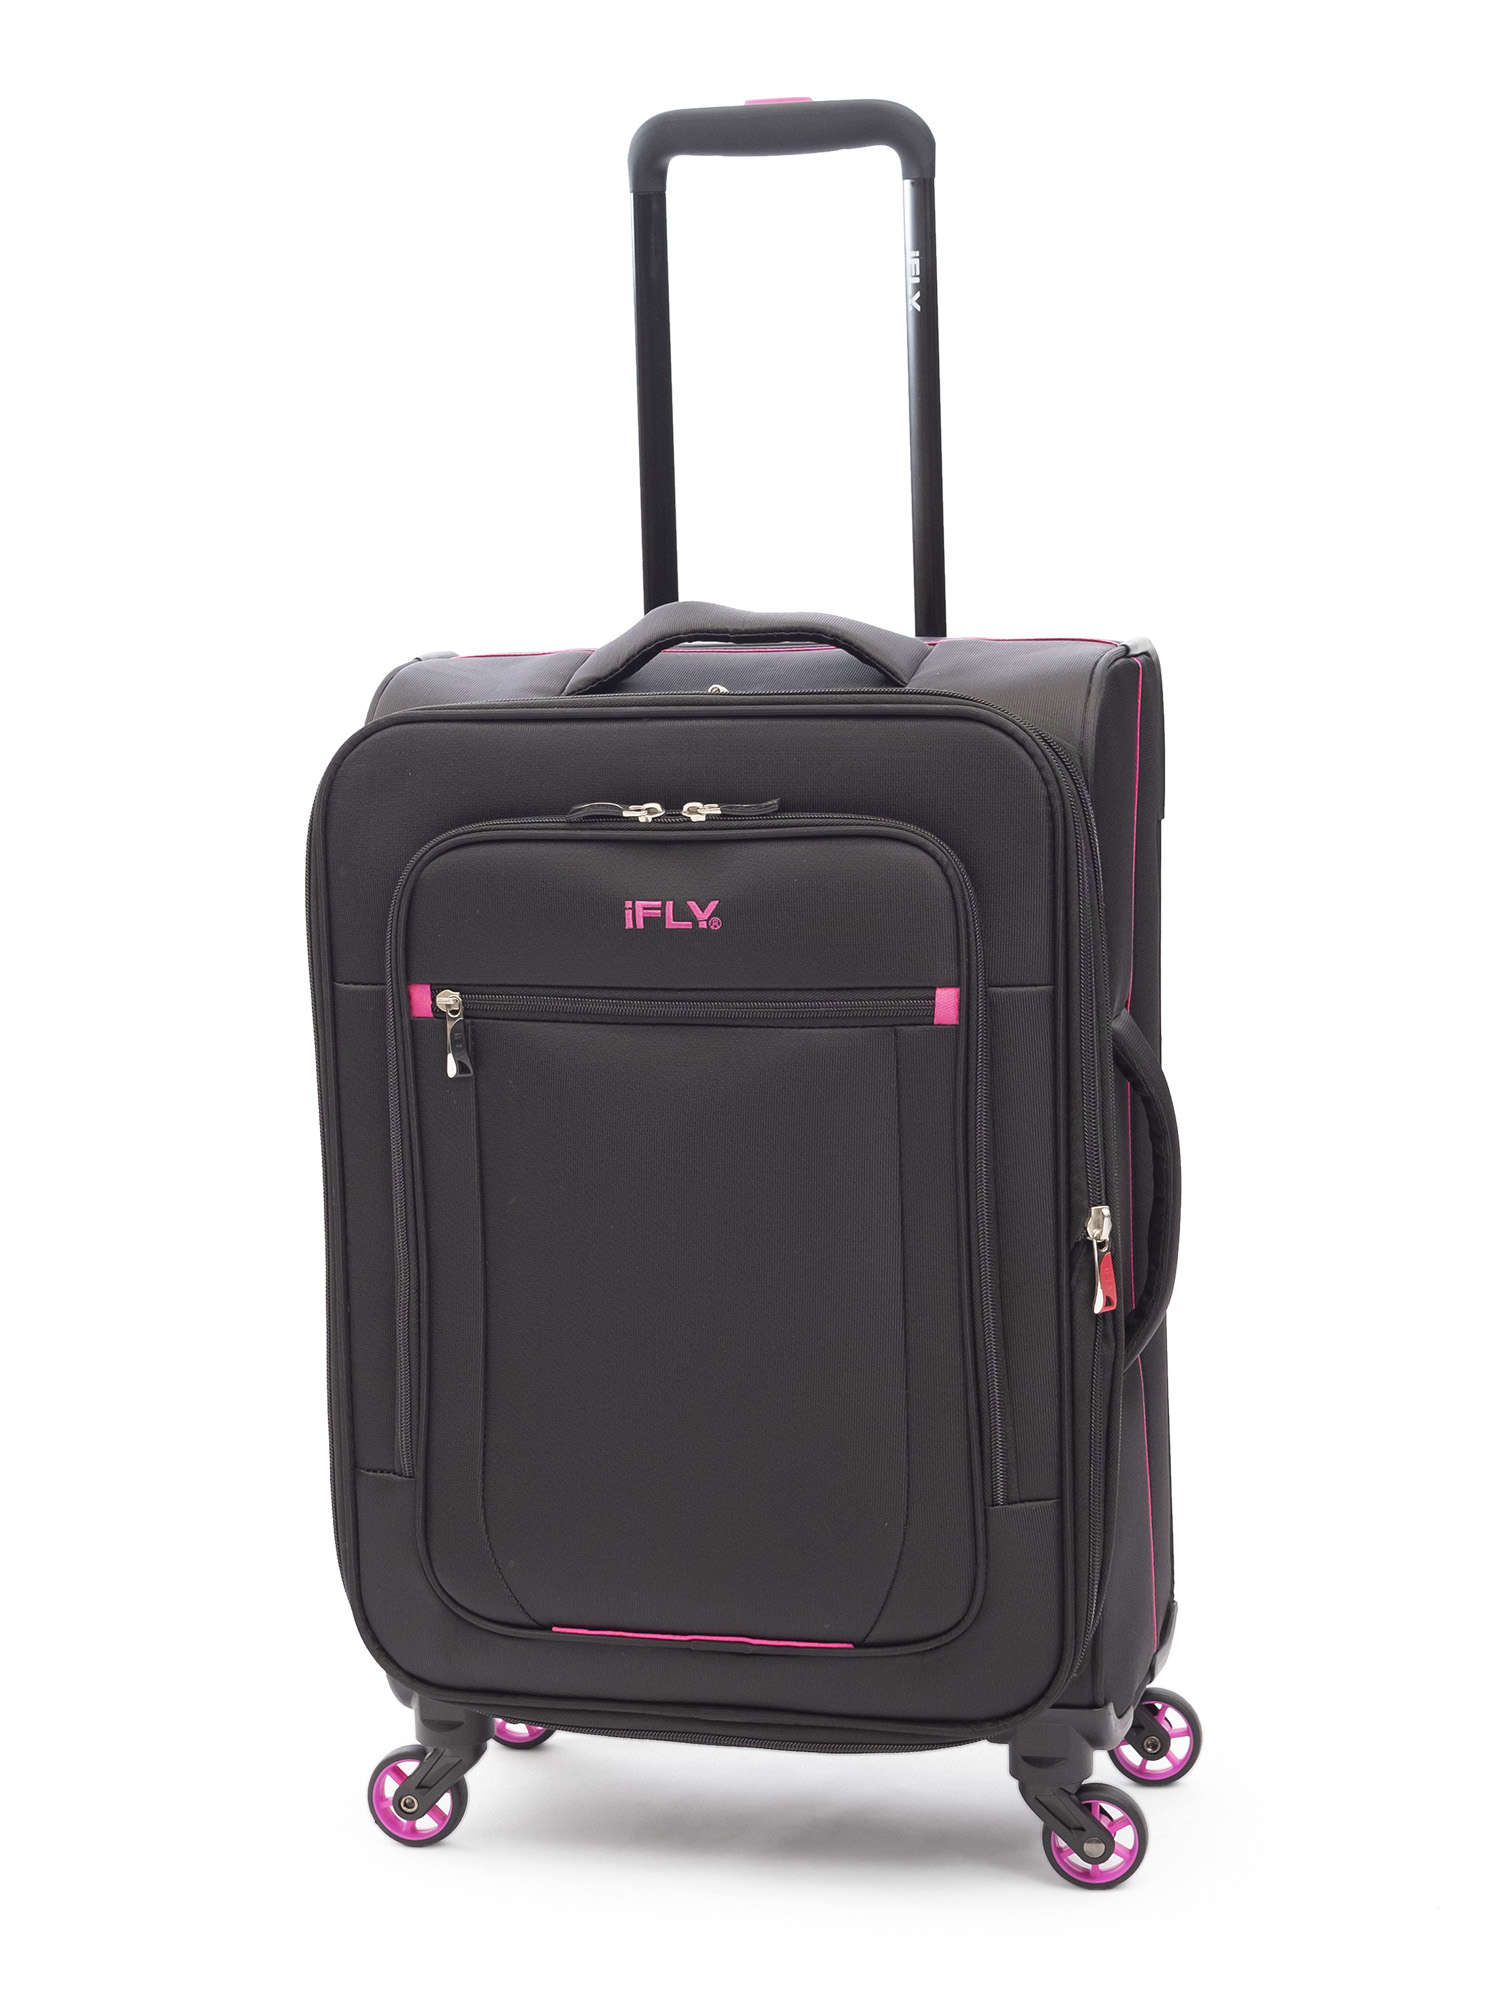 "iFLY Soft Sided Luggage Glamour 20"", Black/Pink"